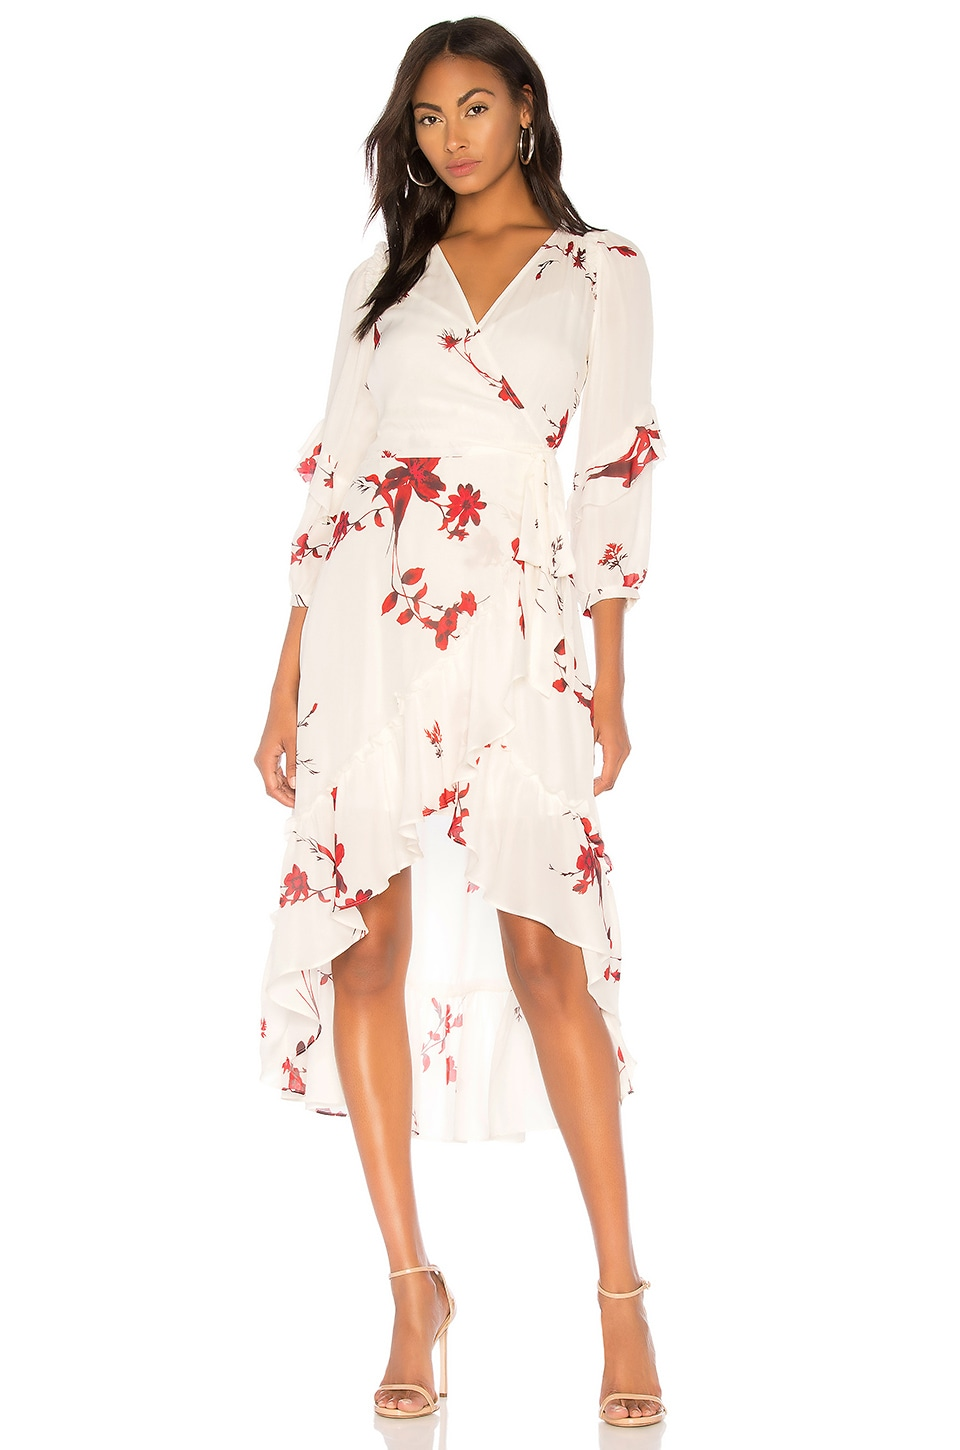 Joie Anawrette Wrap Dress in Porcelain